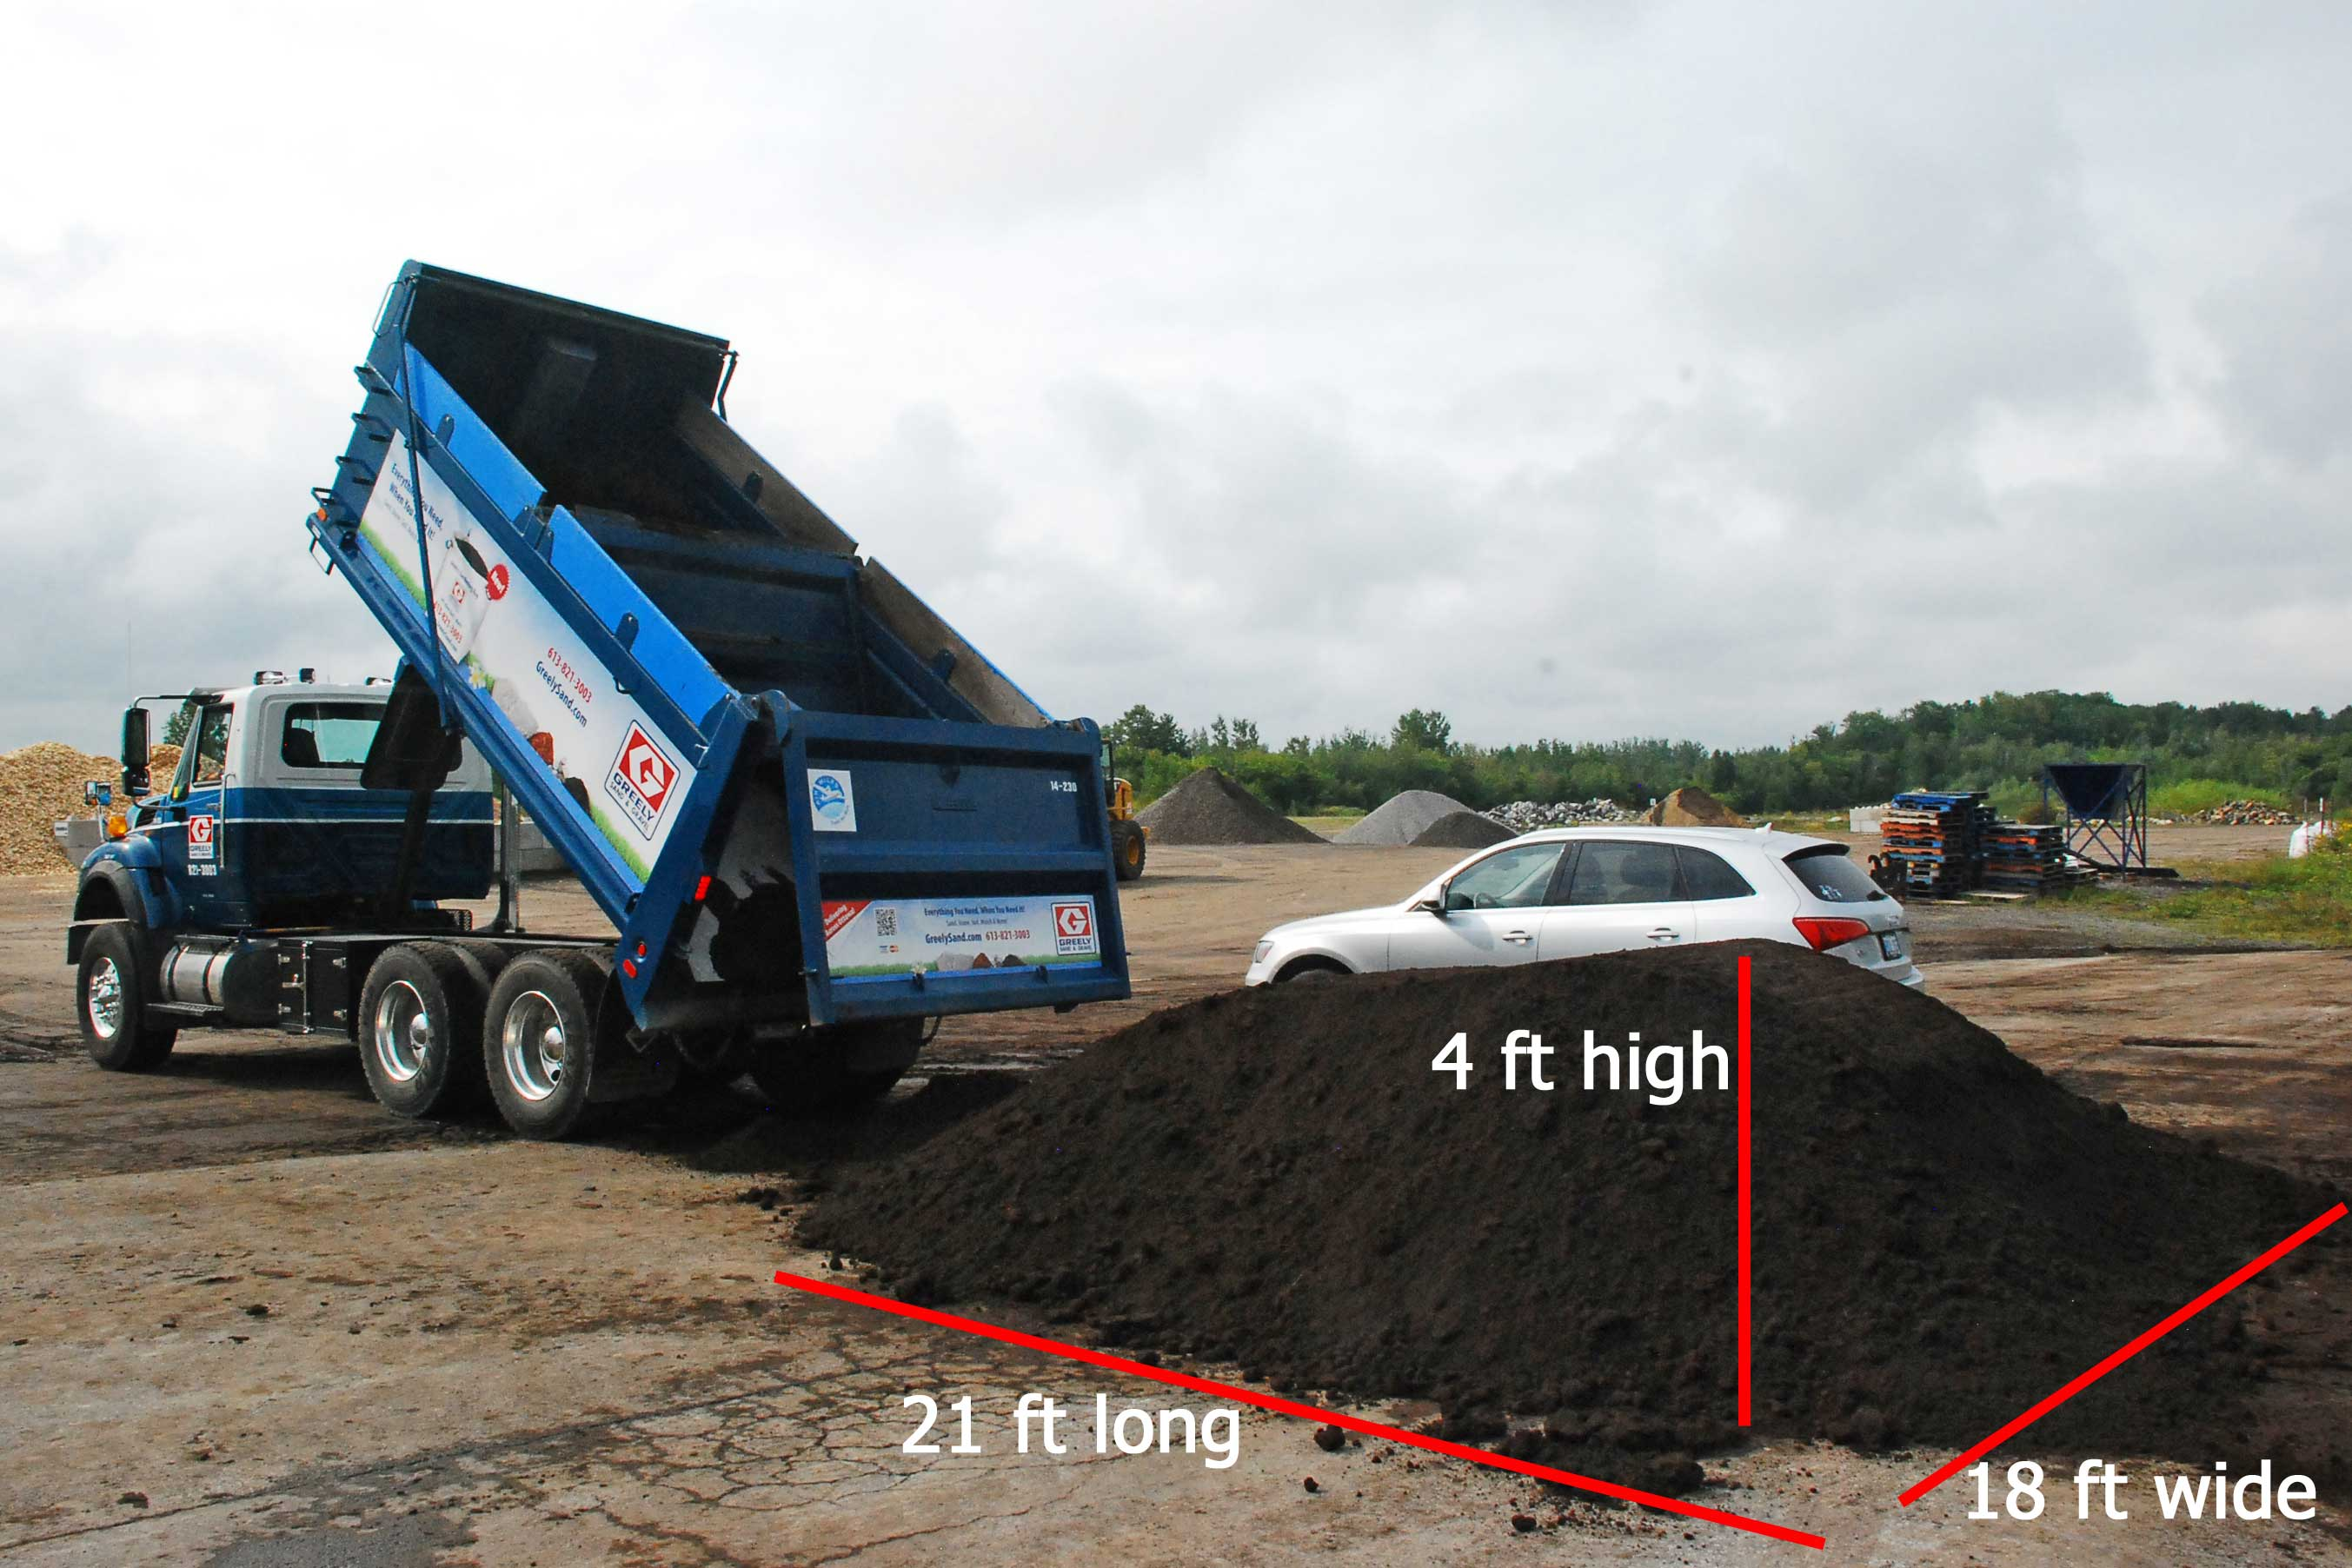 Worksheet 21 Ft Yd 21 ft yd laptuoso how does it measure up greely sand gravel